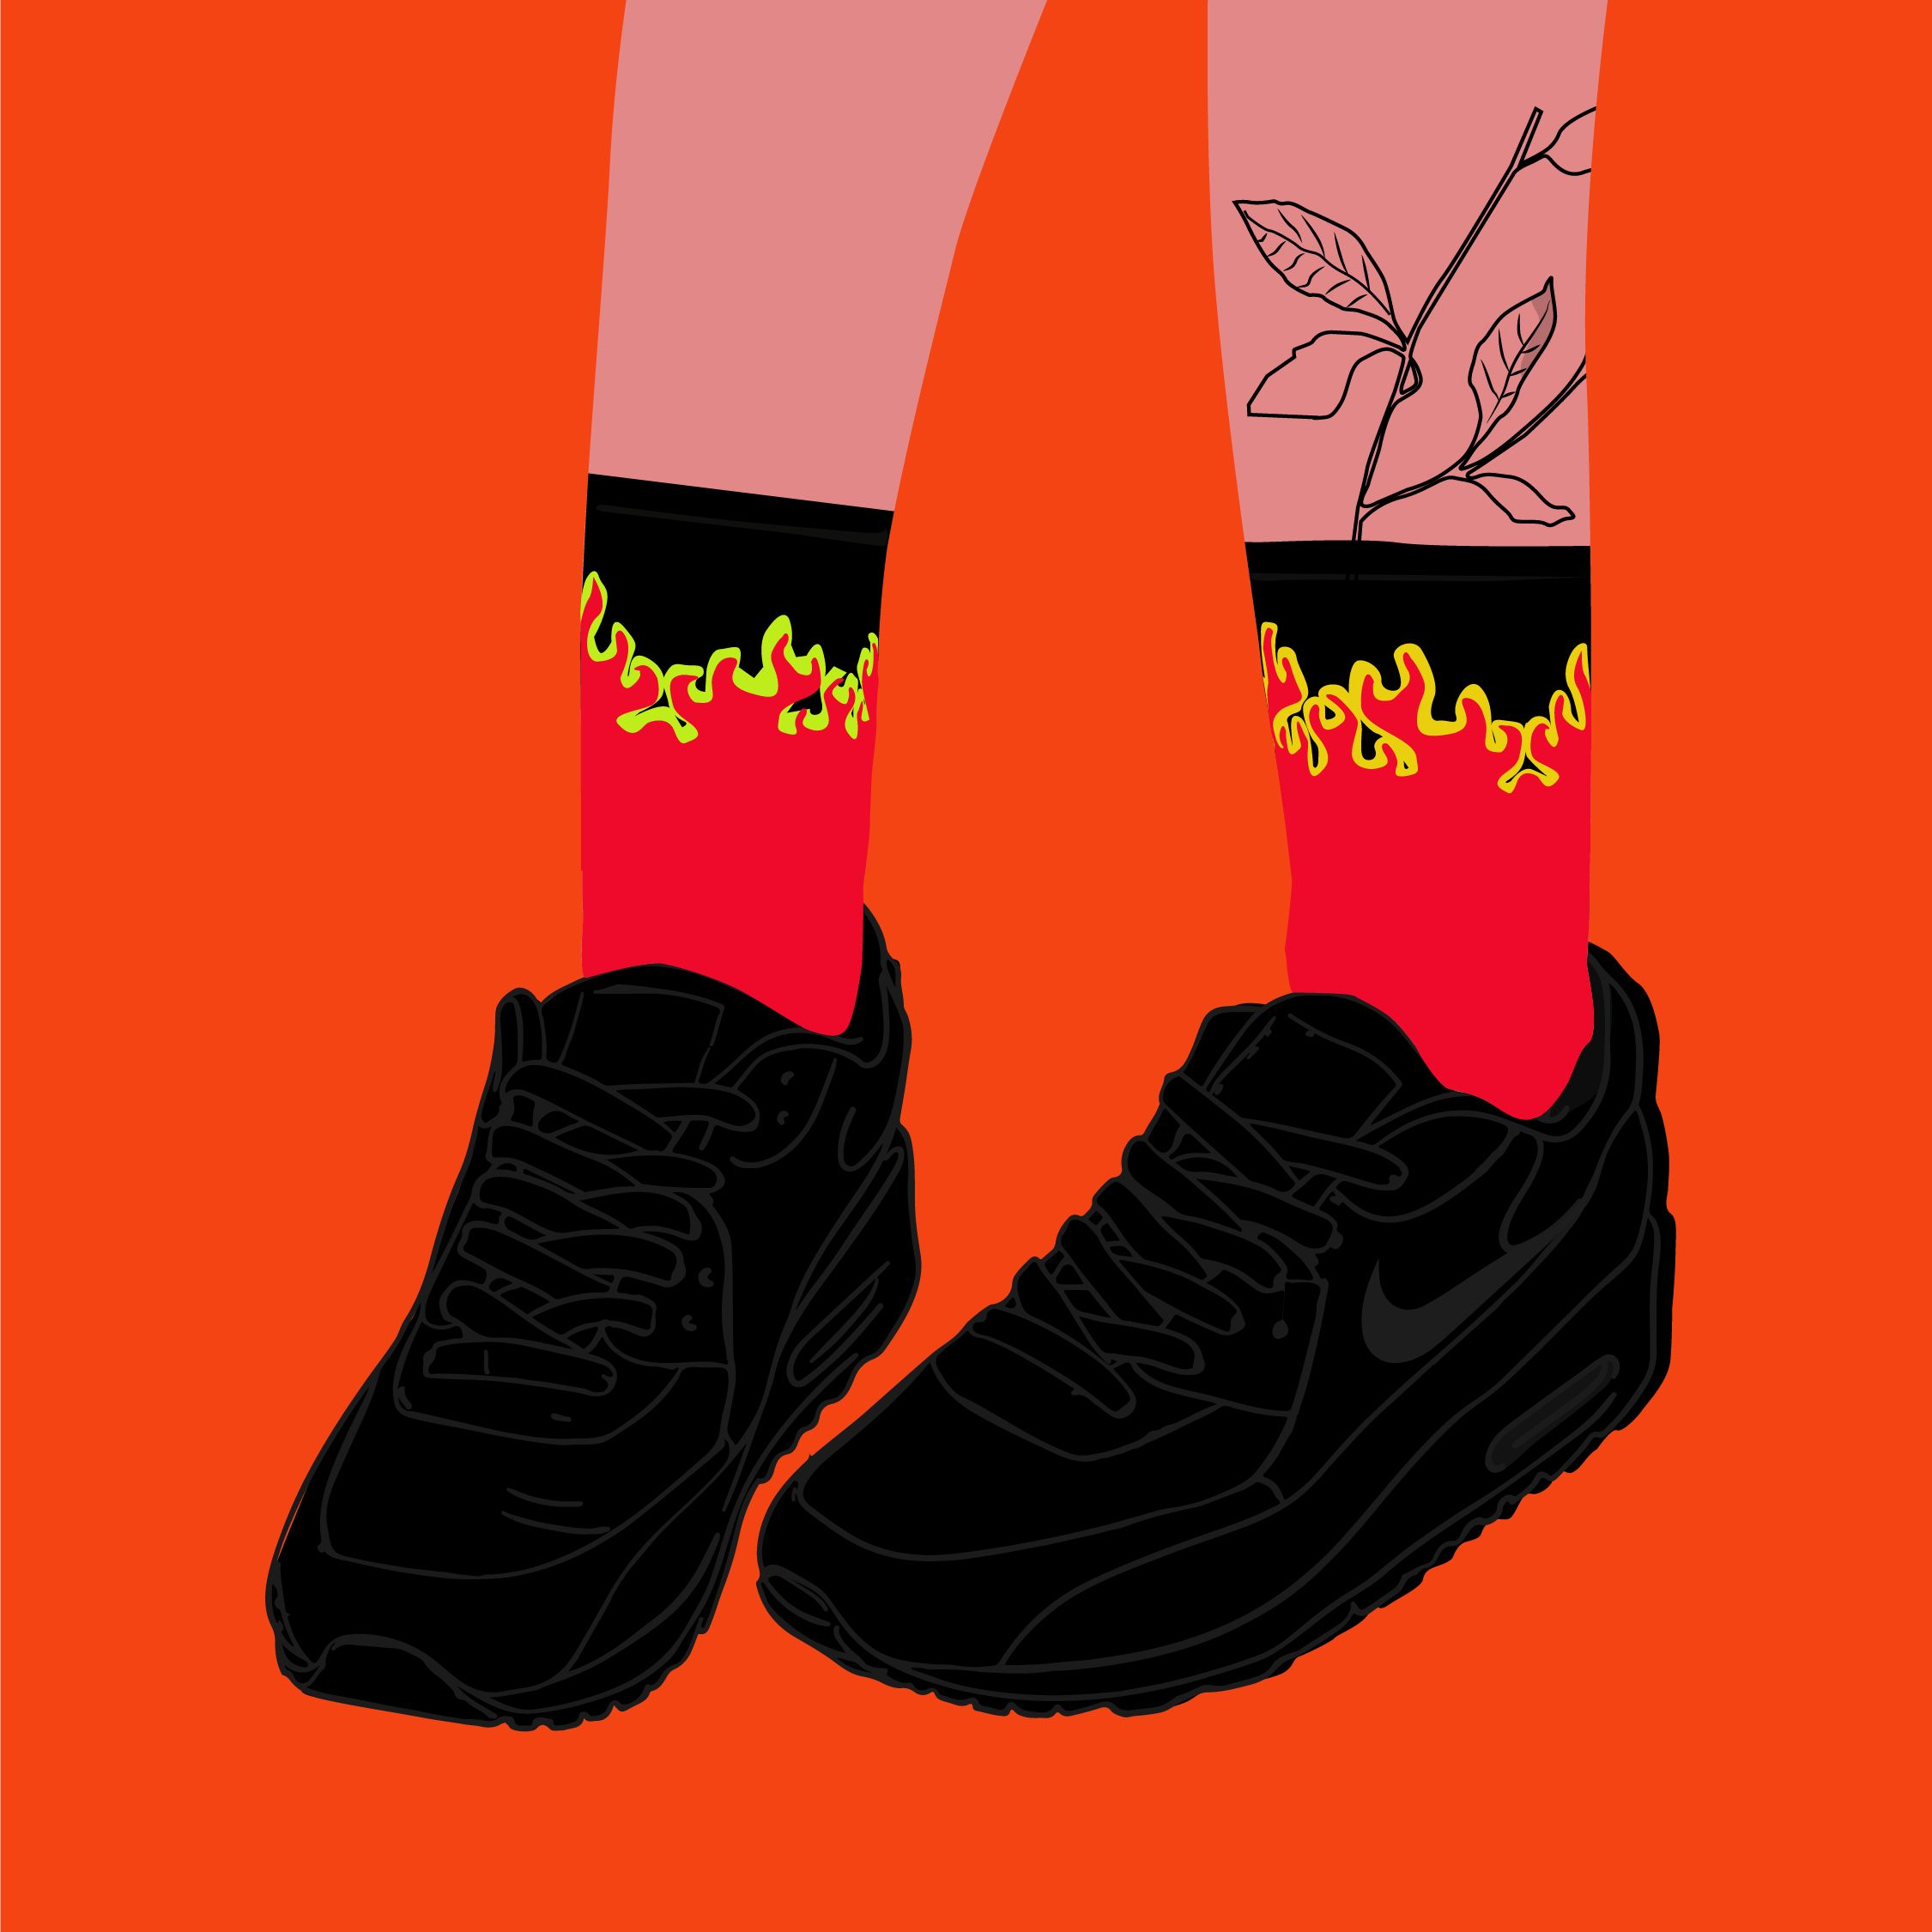 fire stockings with nike sneakers en 2020 Ilustración